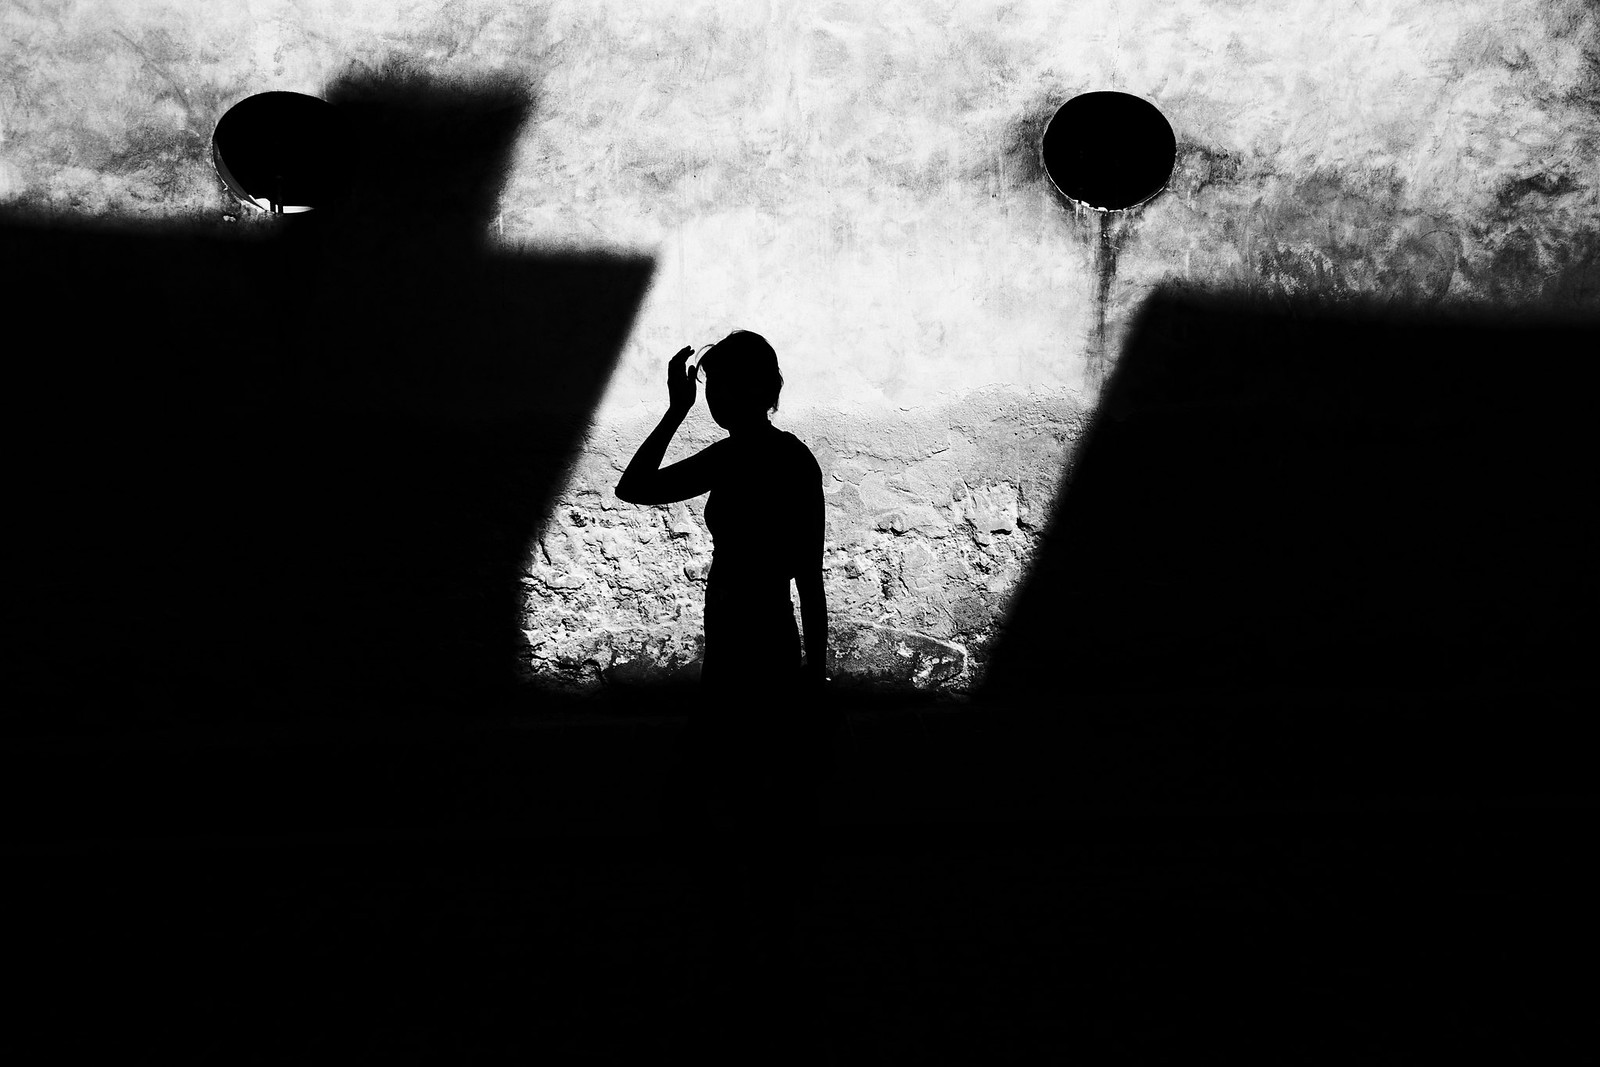 Live in Shadow | by Bastex - Unknown Street Photographer